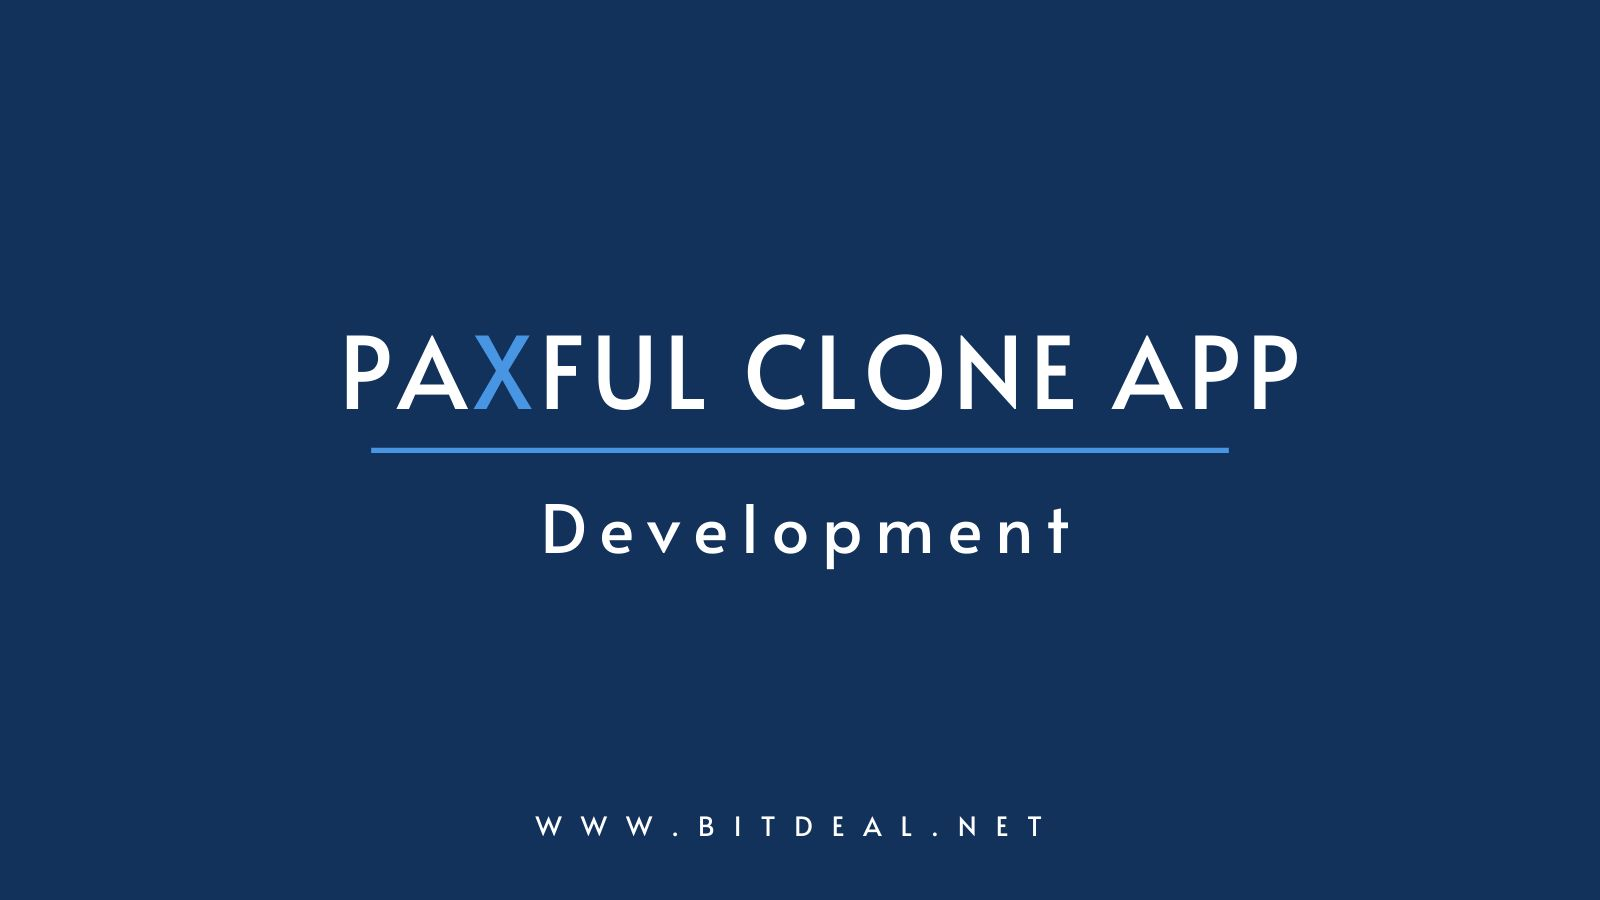 Introducing Paxful Clone App Development For Cryptocurrency Exchange Startups